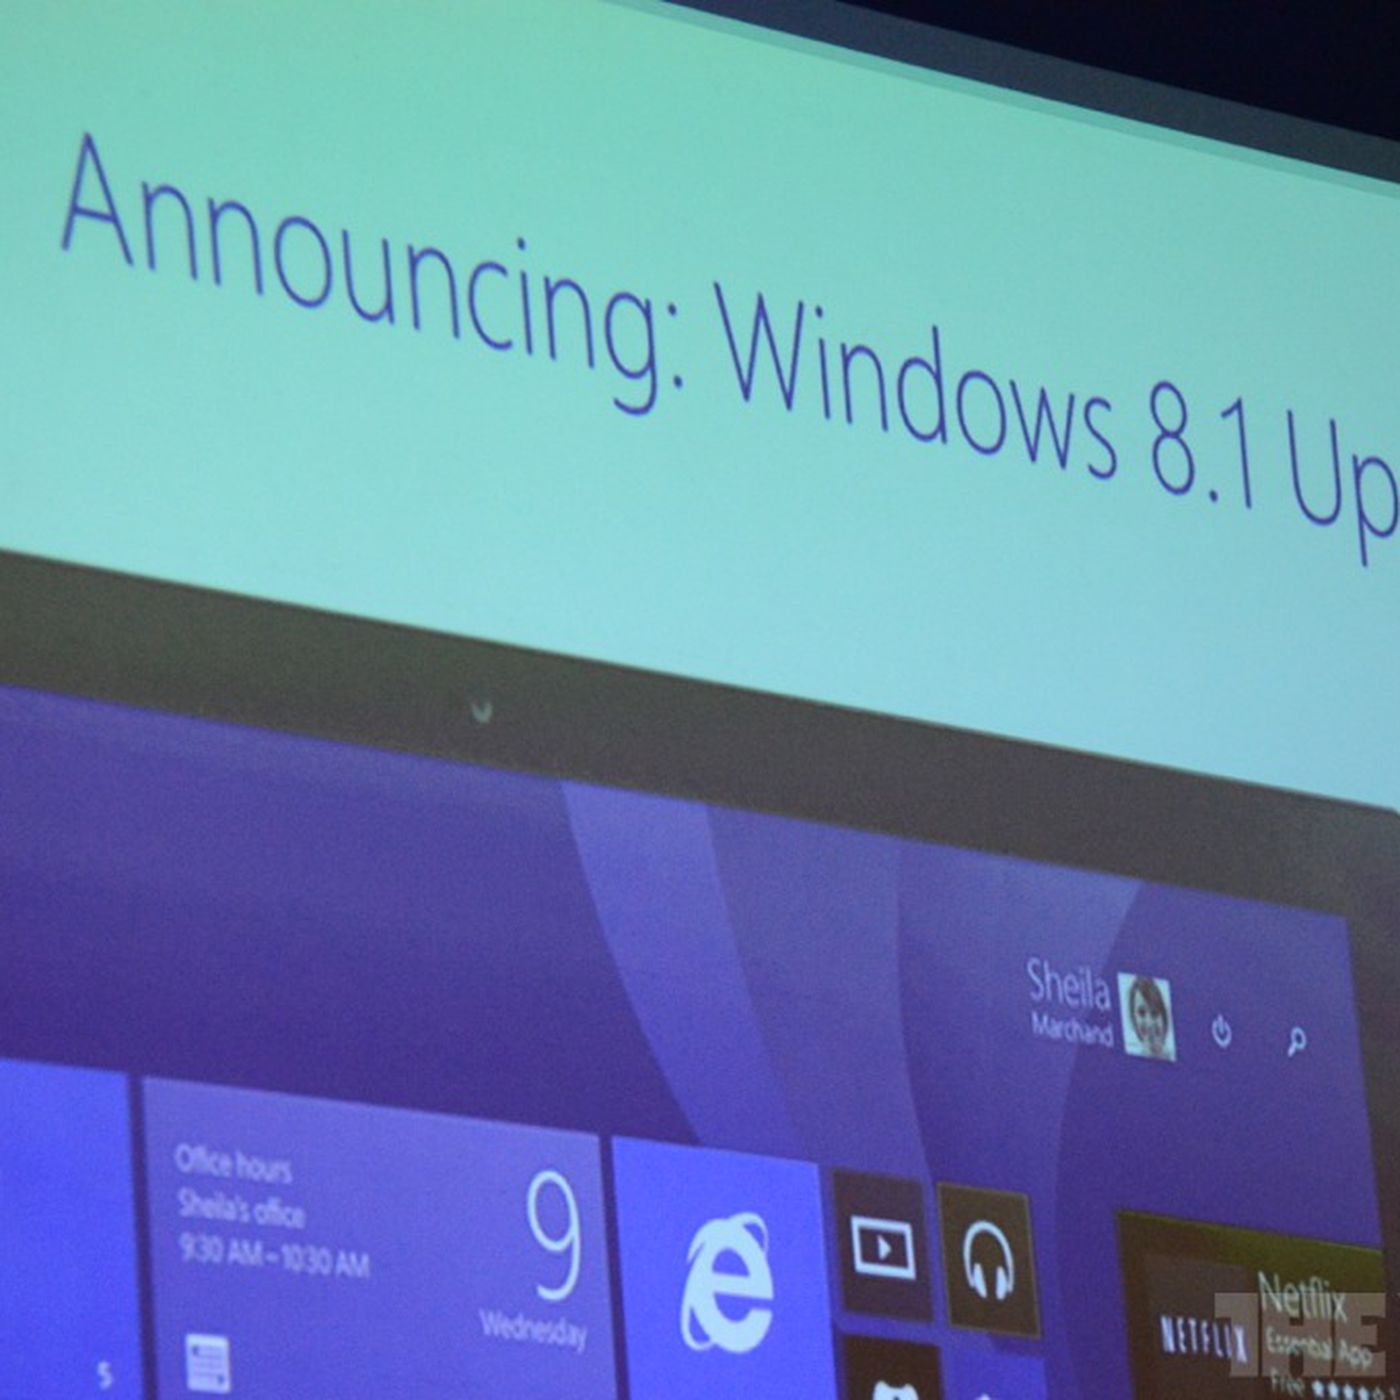 Microsoft announces 'spring' update for Windows 8 1 - The Verge